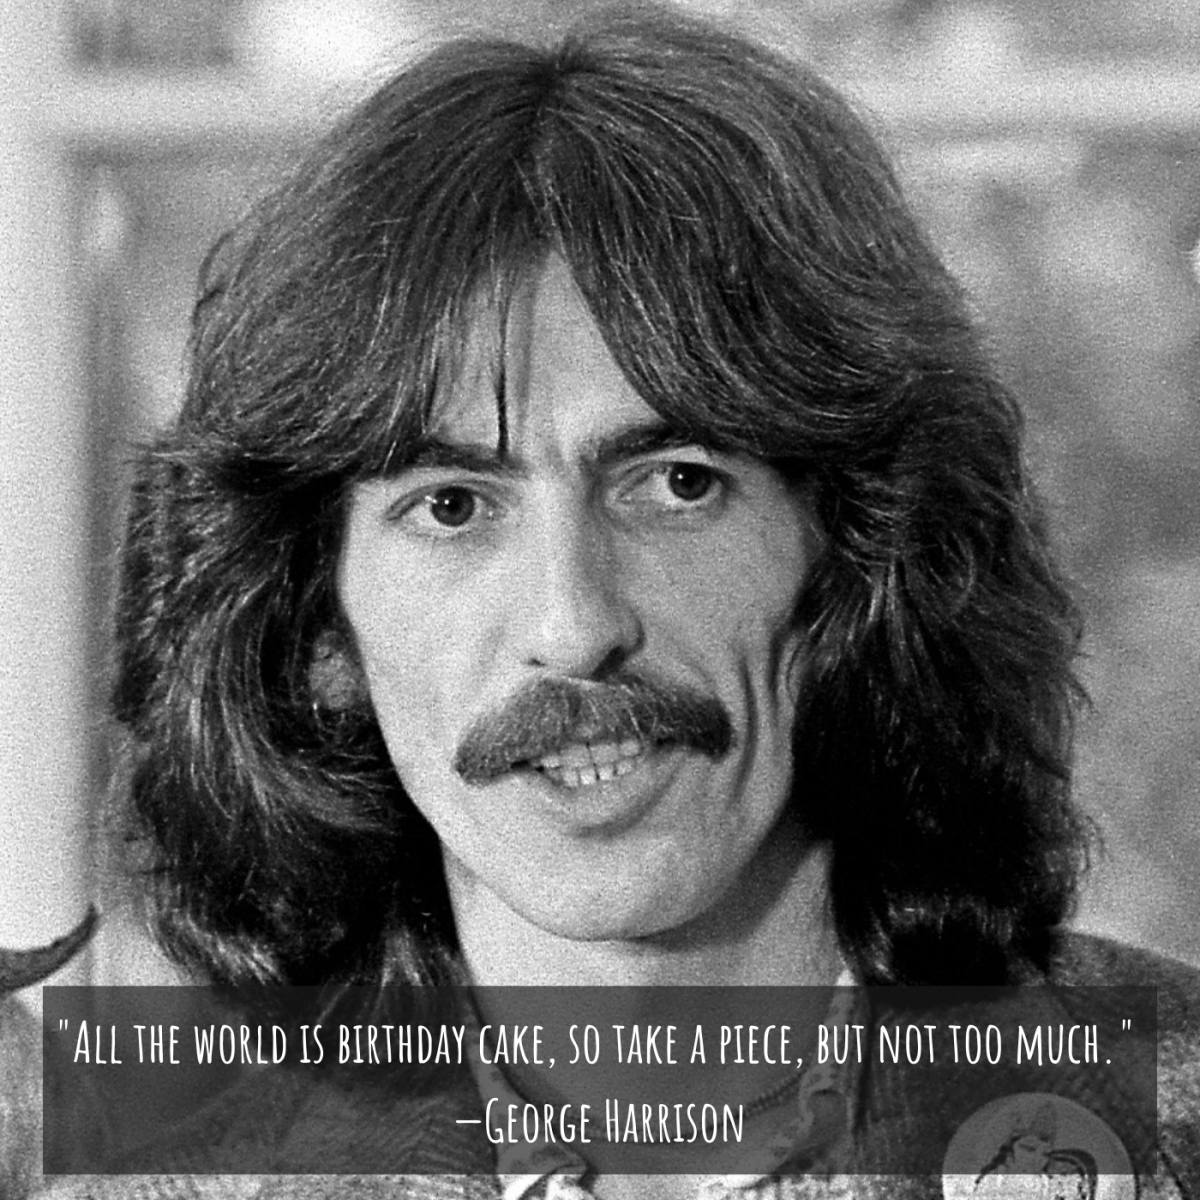 """All the world is birthday cake, so take a piece, but not too much."" —George Harrison"